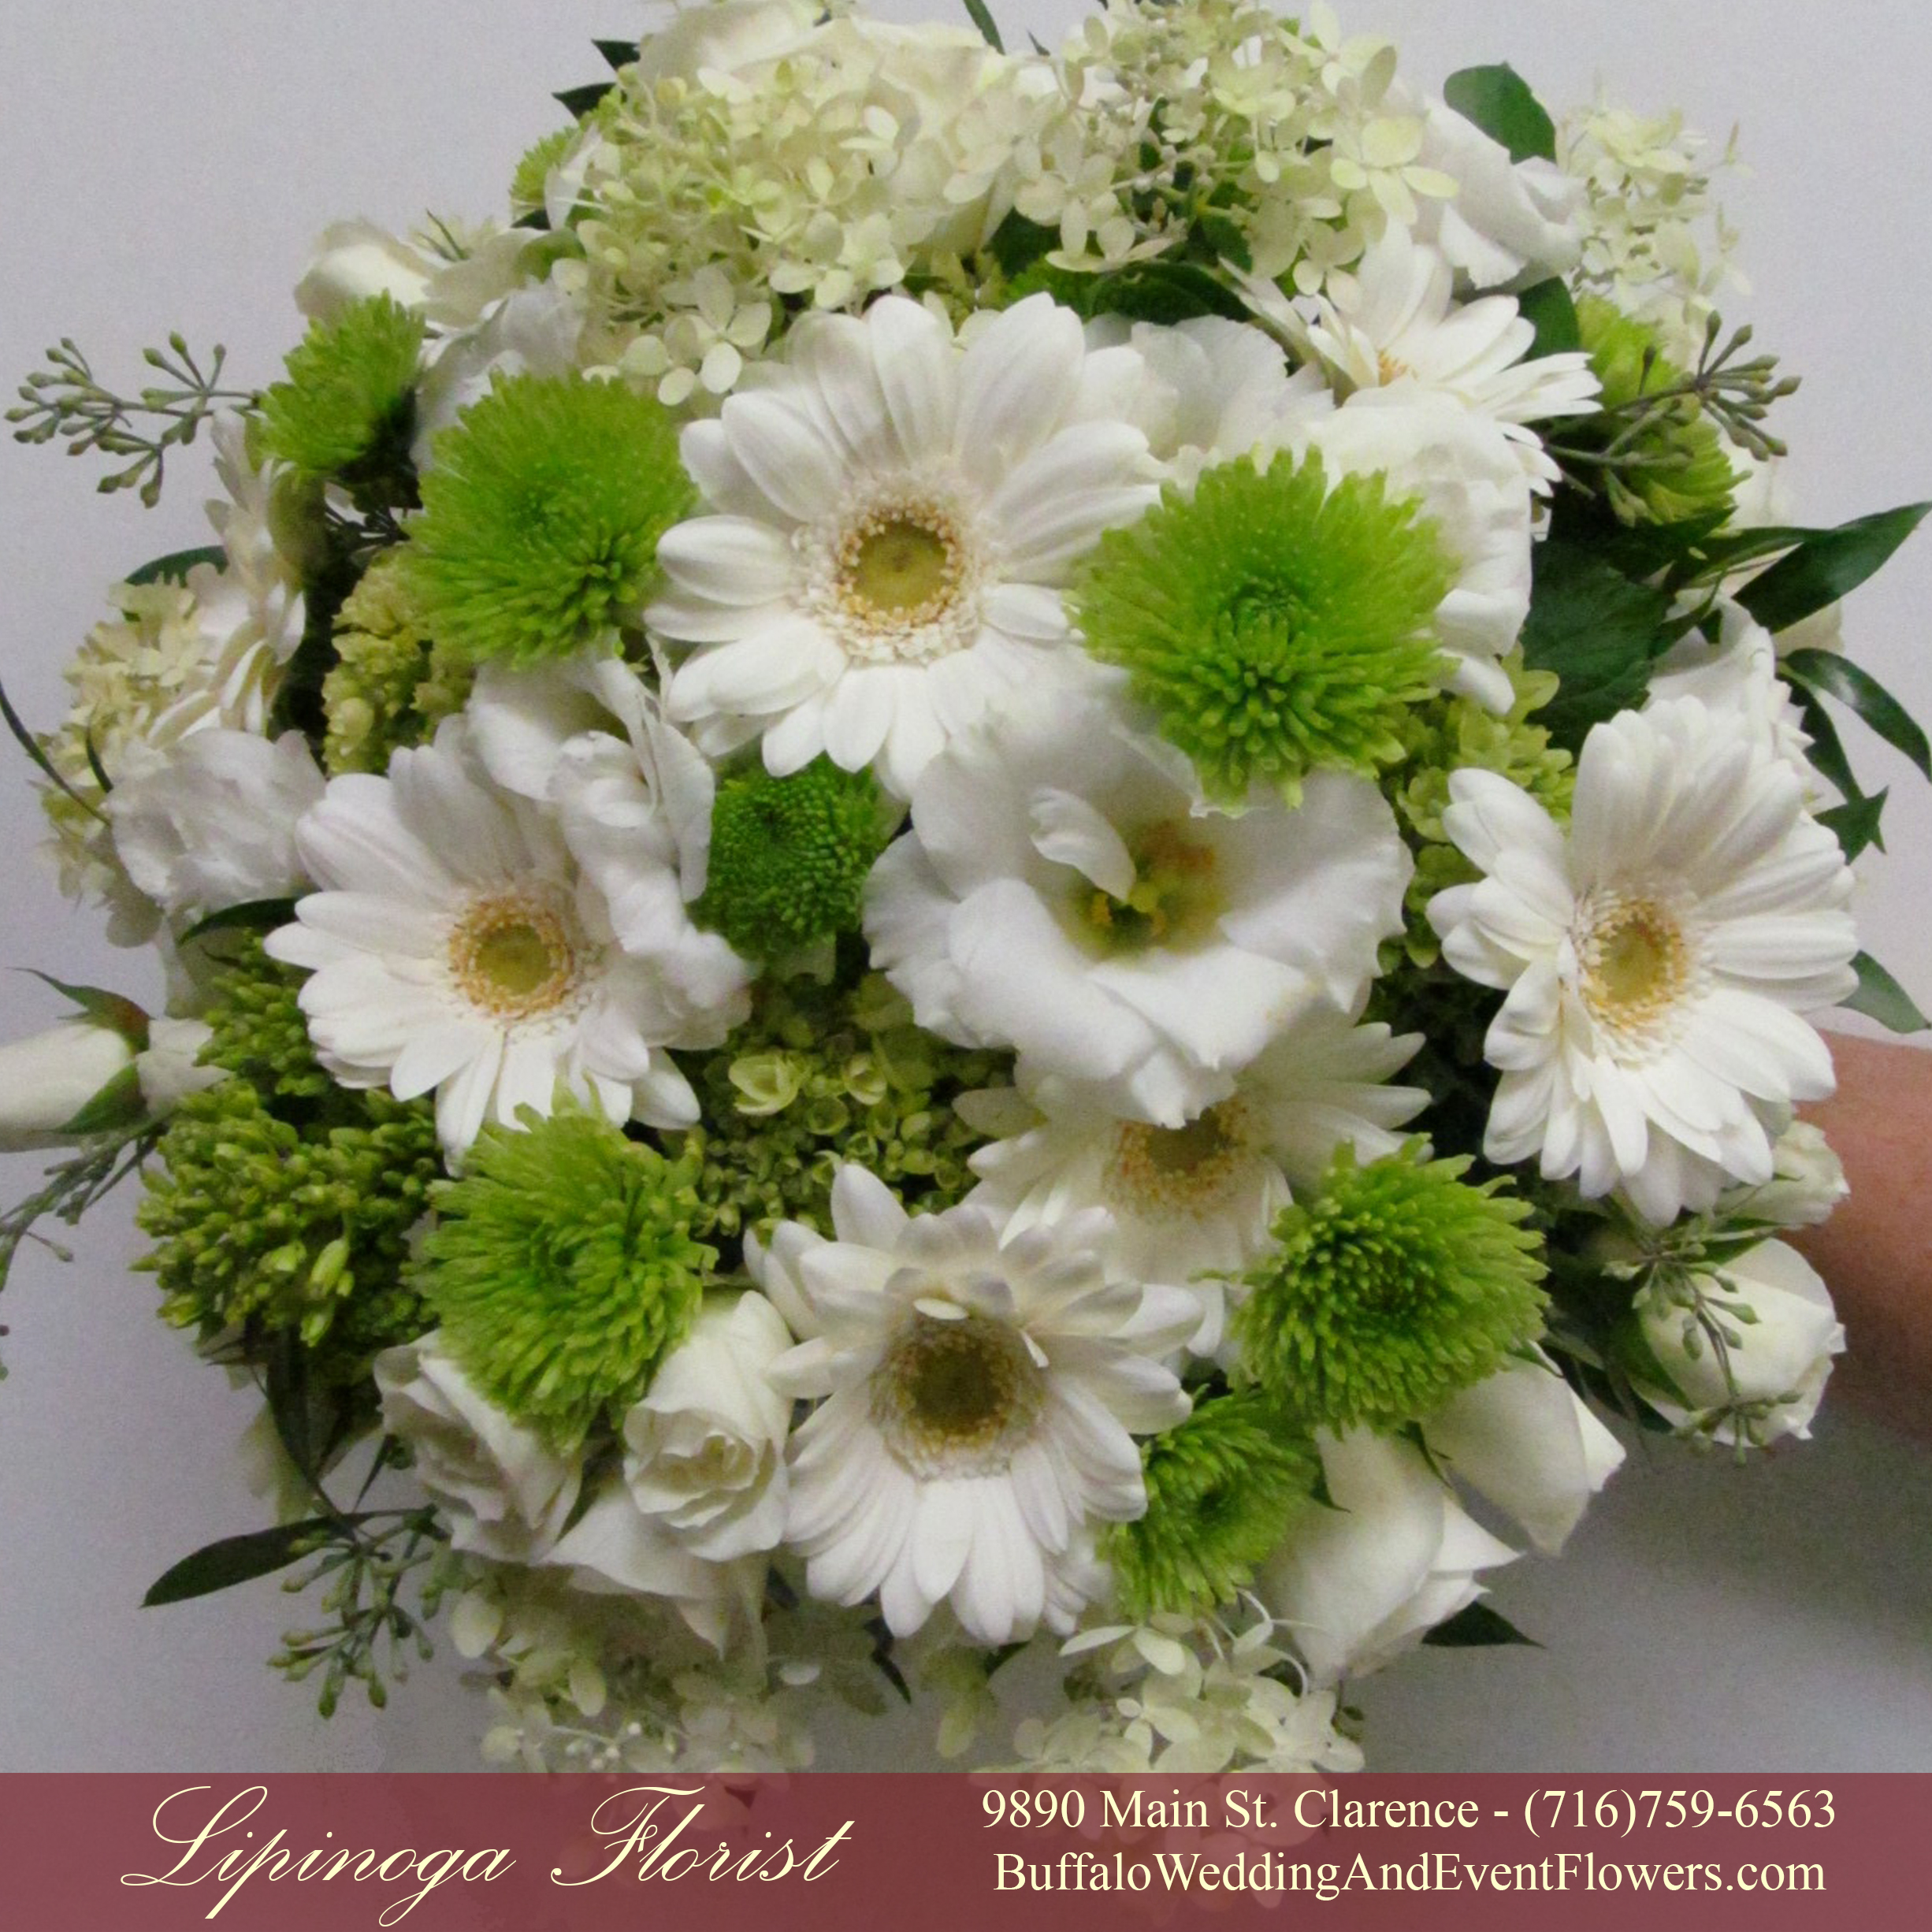 Wedding Flowers Amherst Ny Buffalo Wedding Event Flowers By